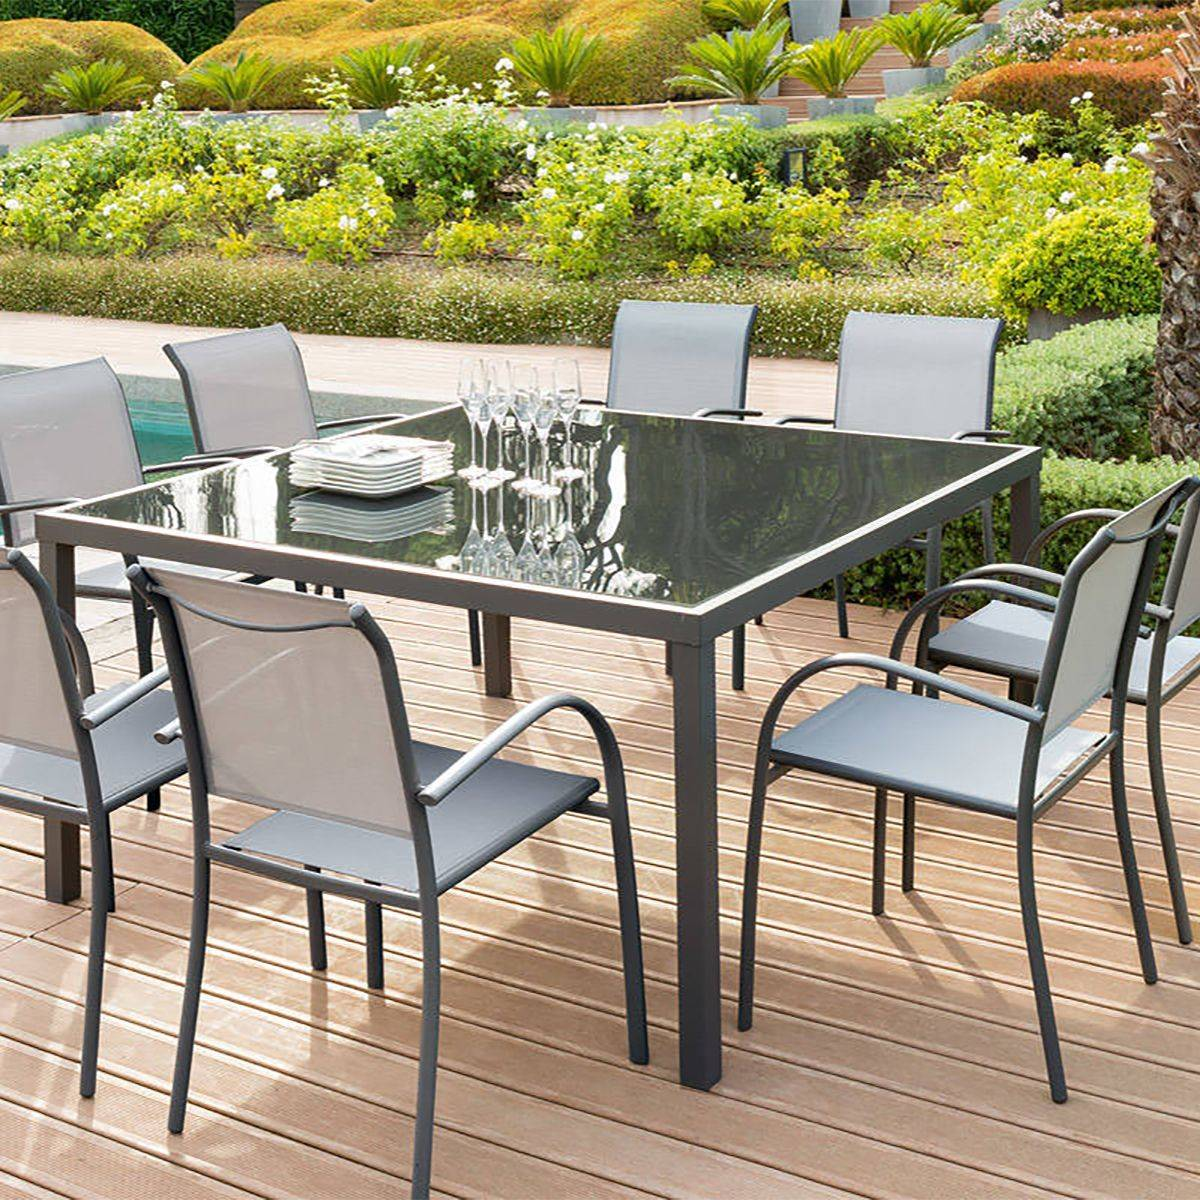 Table de jardin carr e piazza verre anthracite graphite for Table carree et chaises